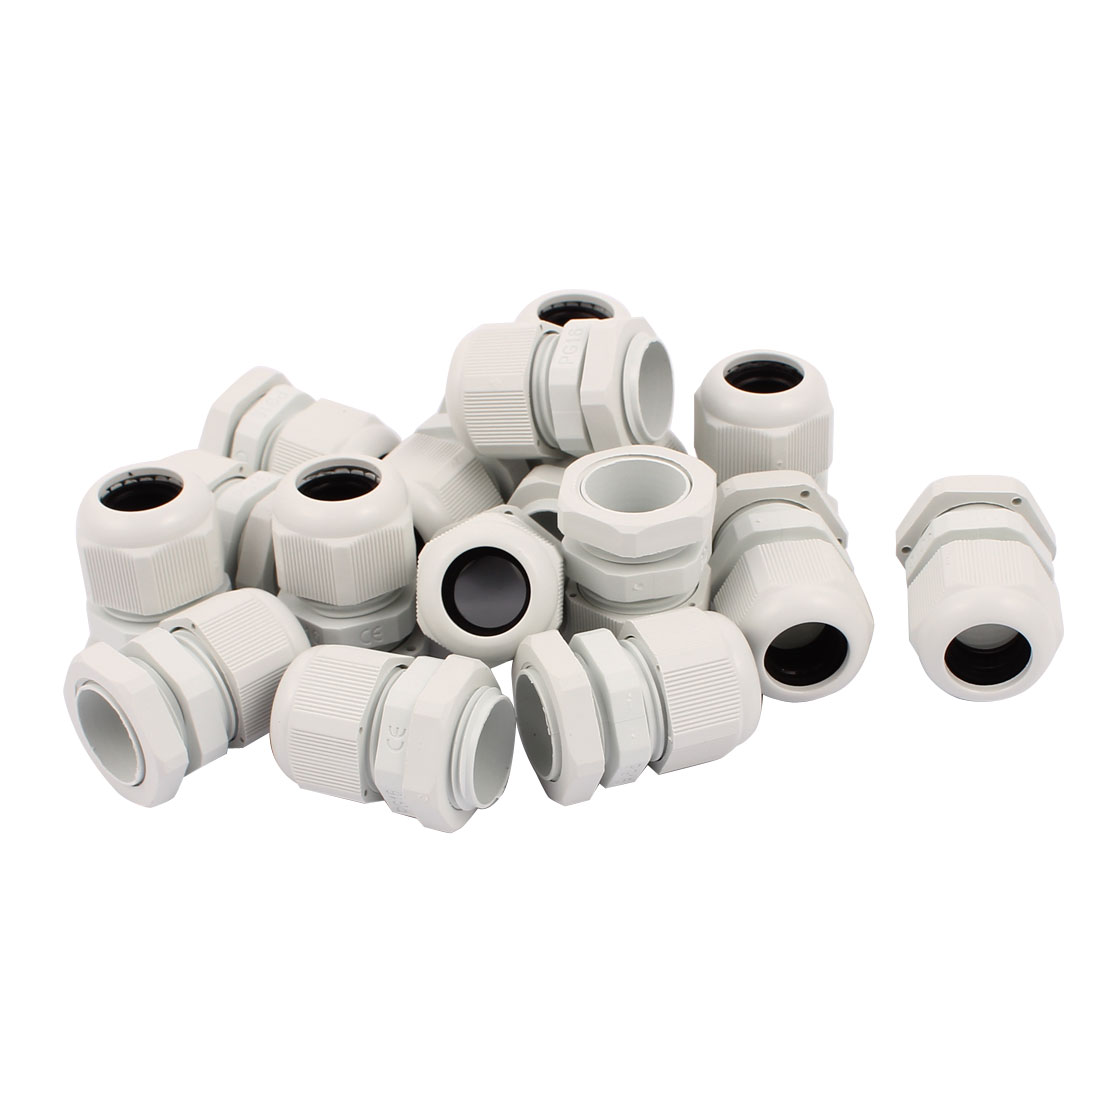 16 PCS PG16 Water Resistance Cable Glands Fixing Cord Connector Joint Adapter White